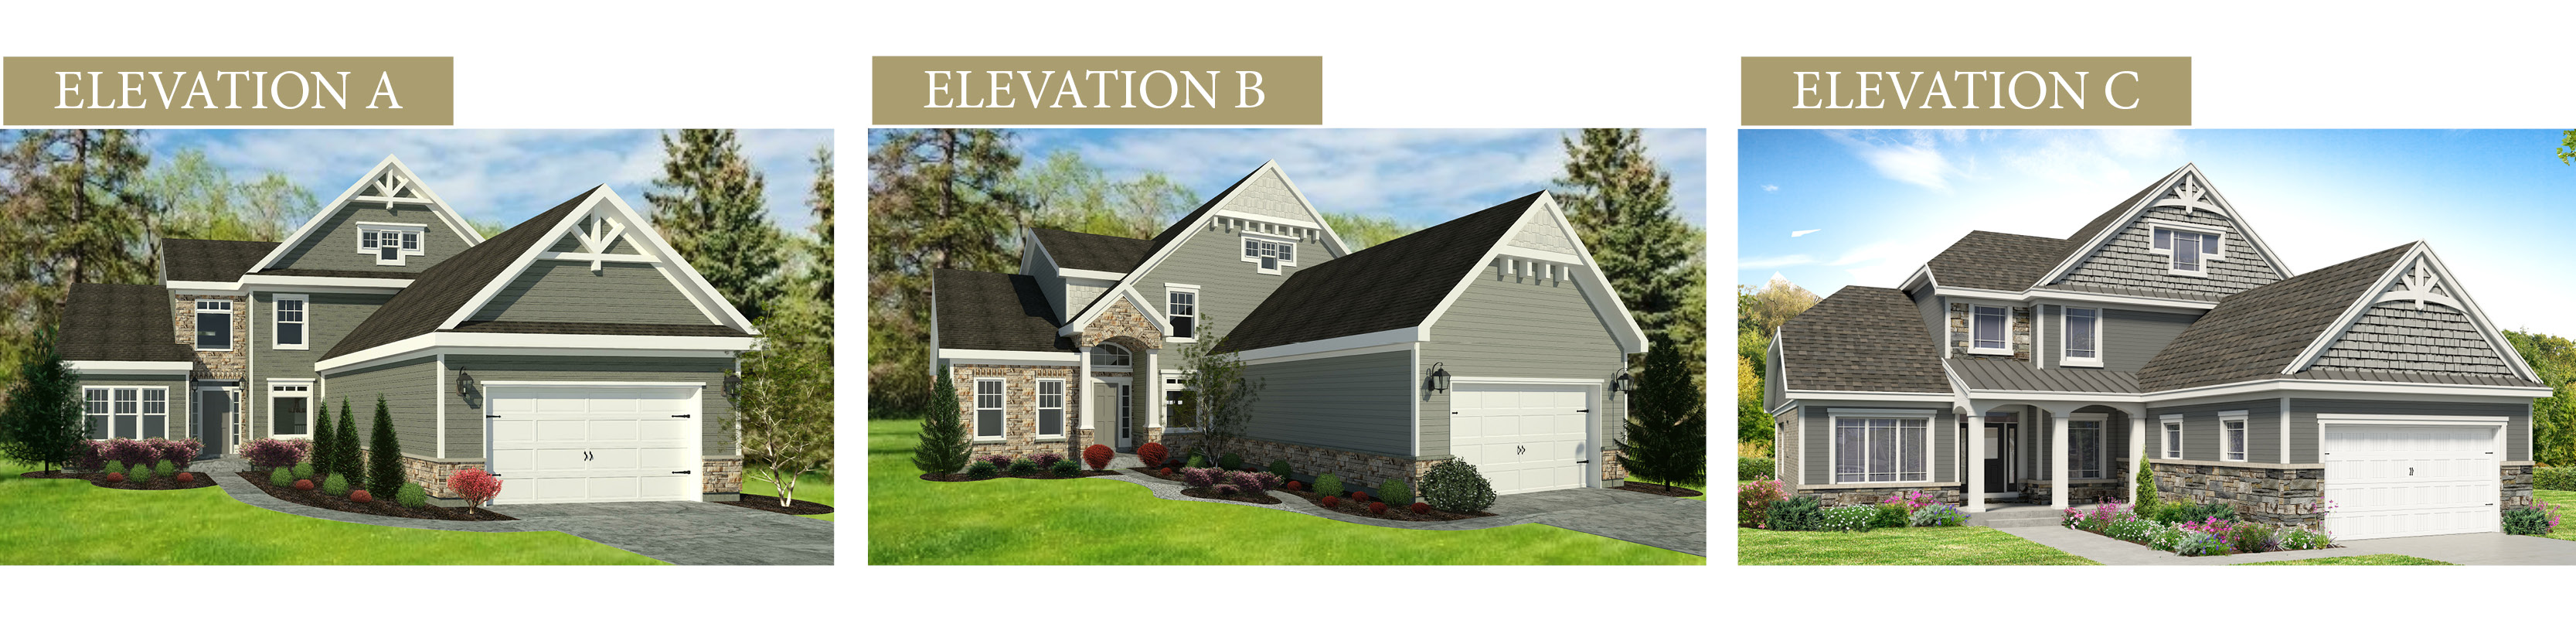 Custom renderings of the Sierra. A standard plan by Design Homes and Development.